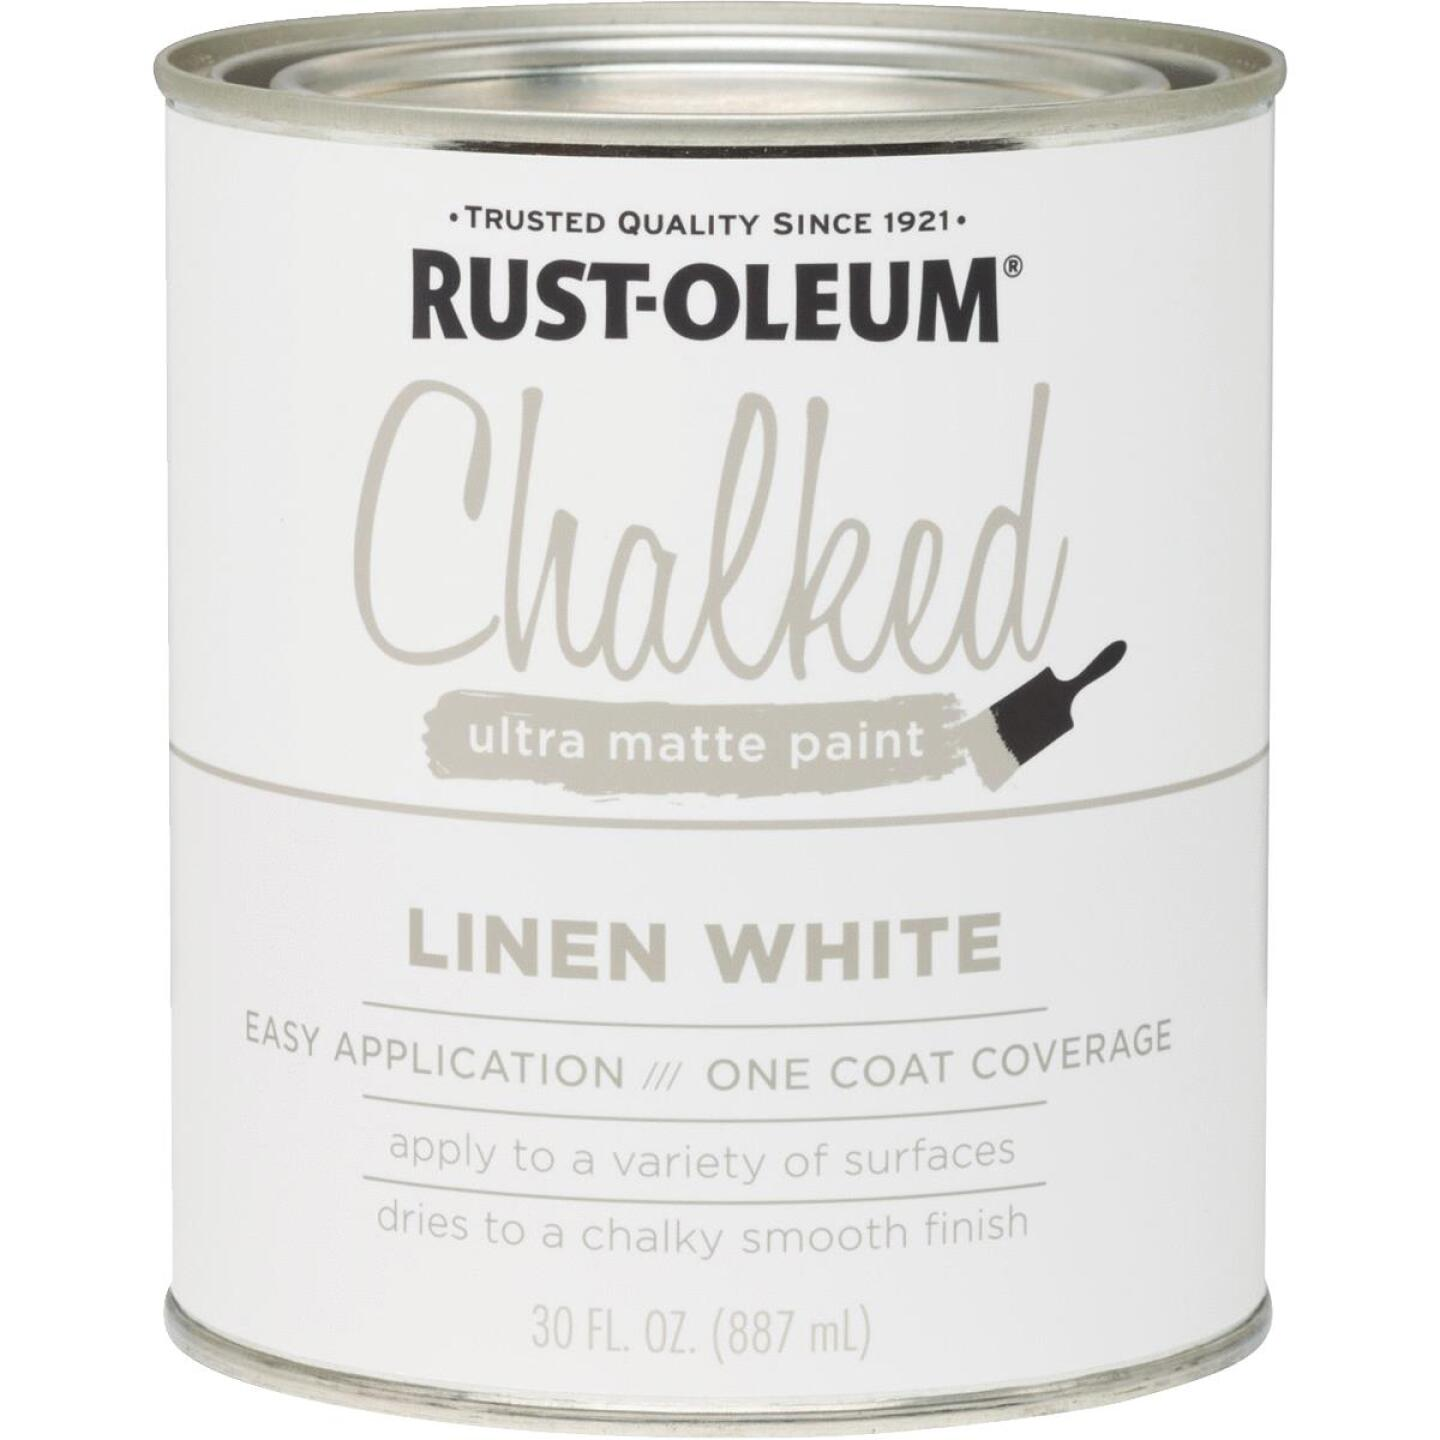 Rust-Oleum Chalked Linen White Ultra Matte 30 Oz. Chalk Paint Image 1